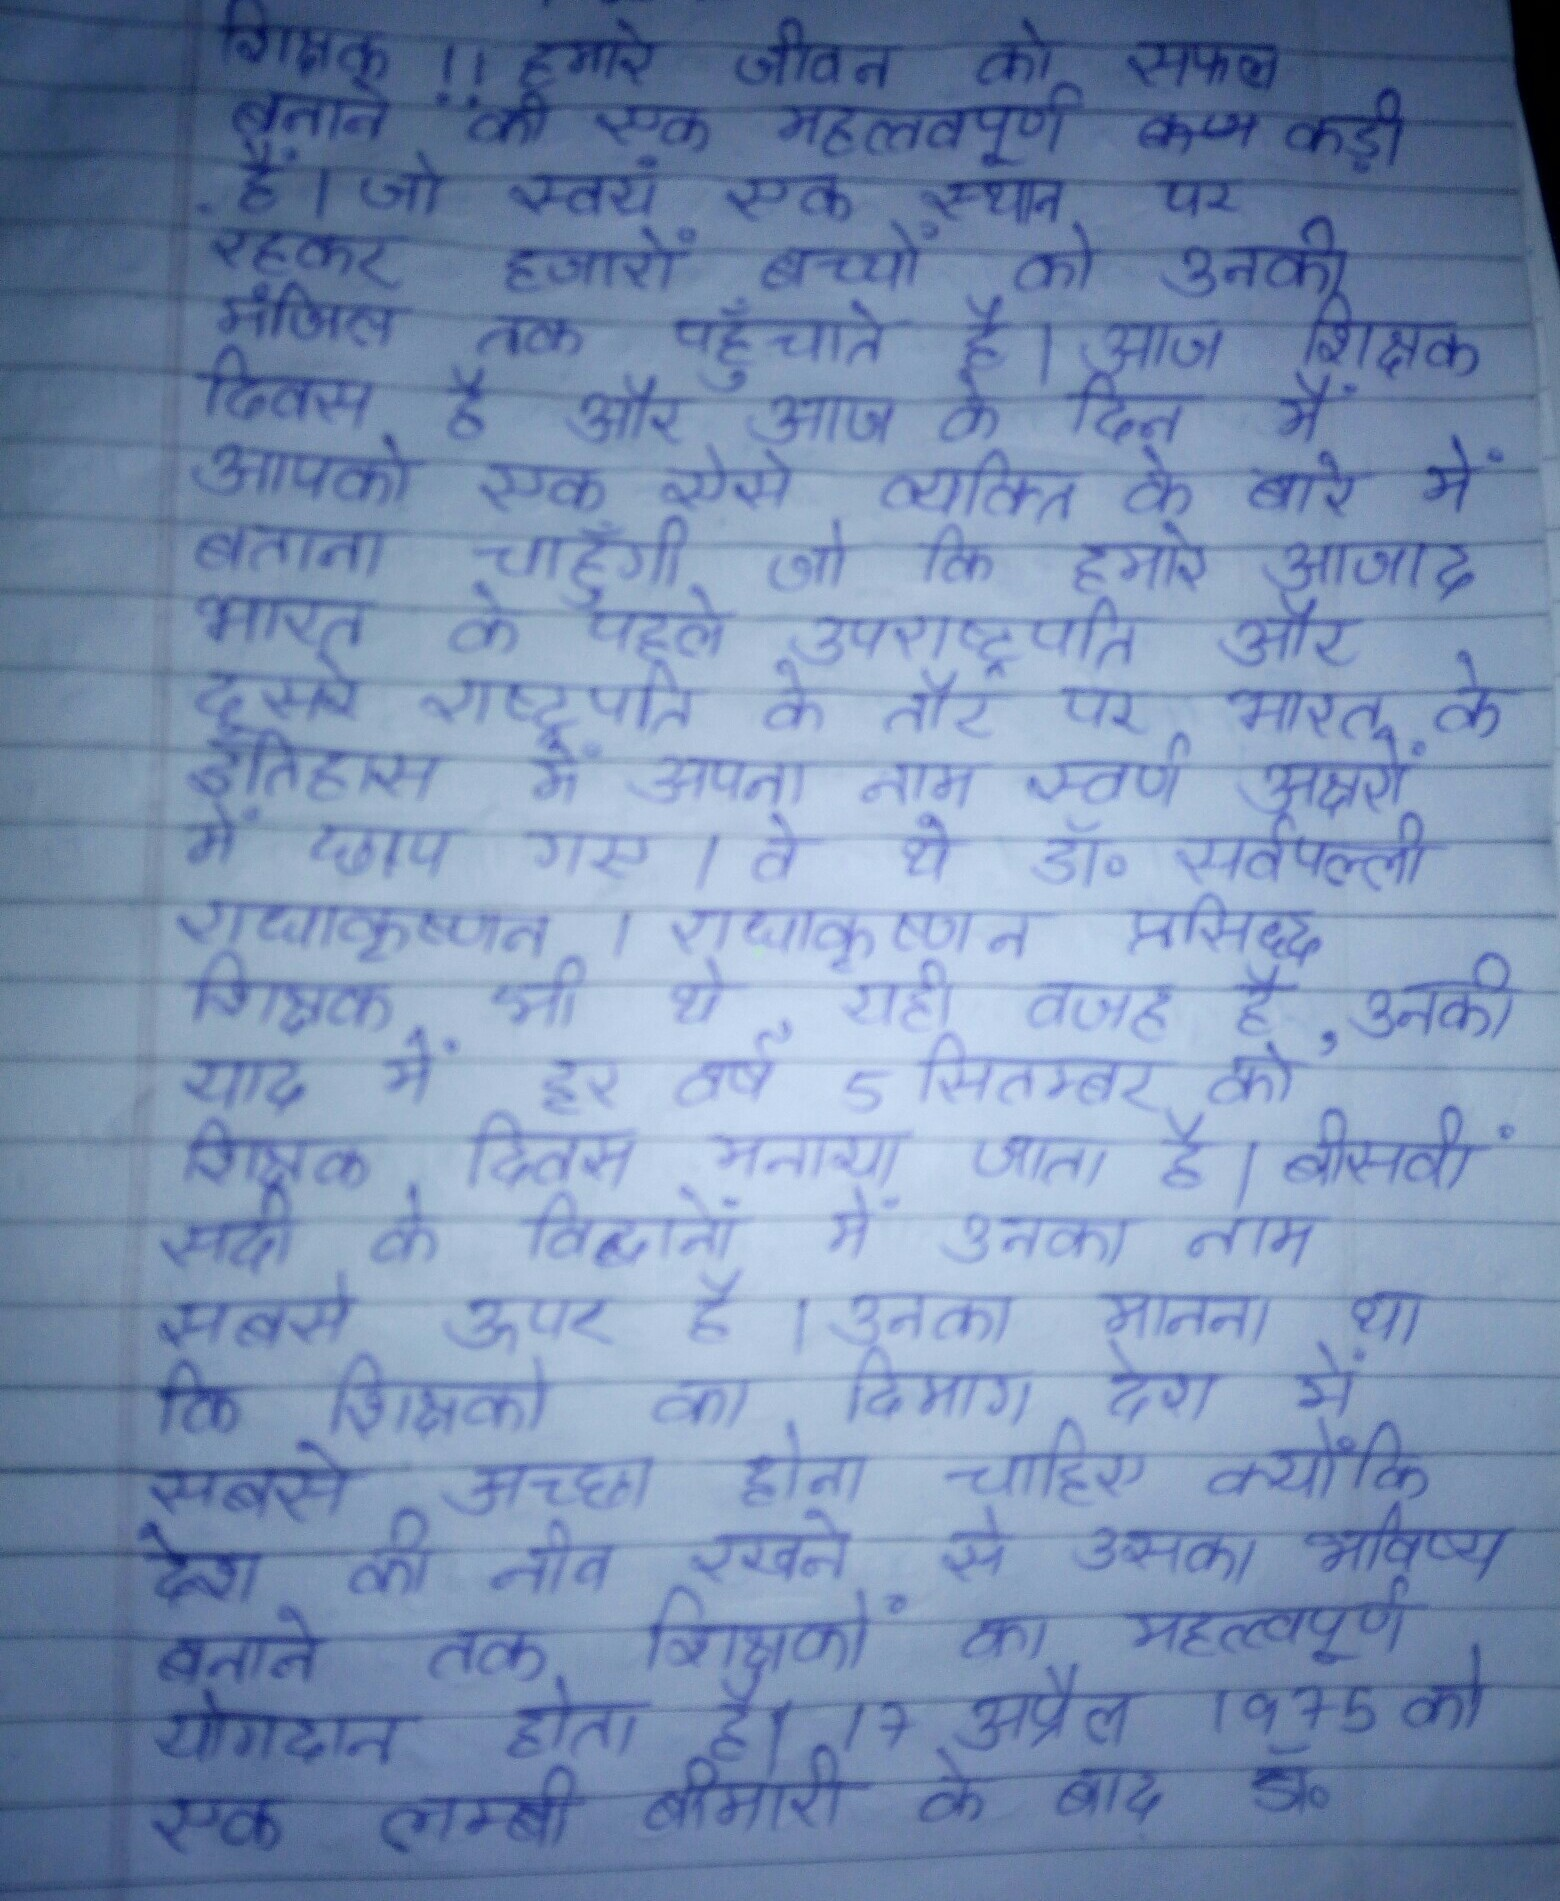 Q write some good lines for best teacher on teacher day in a